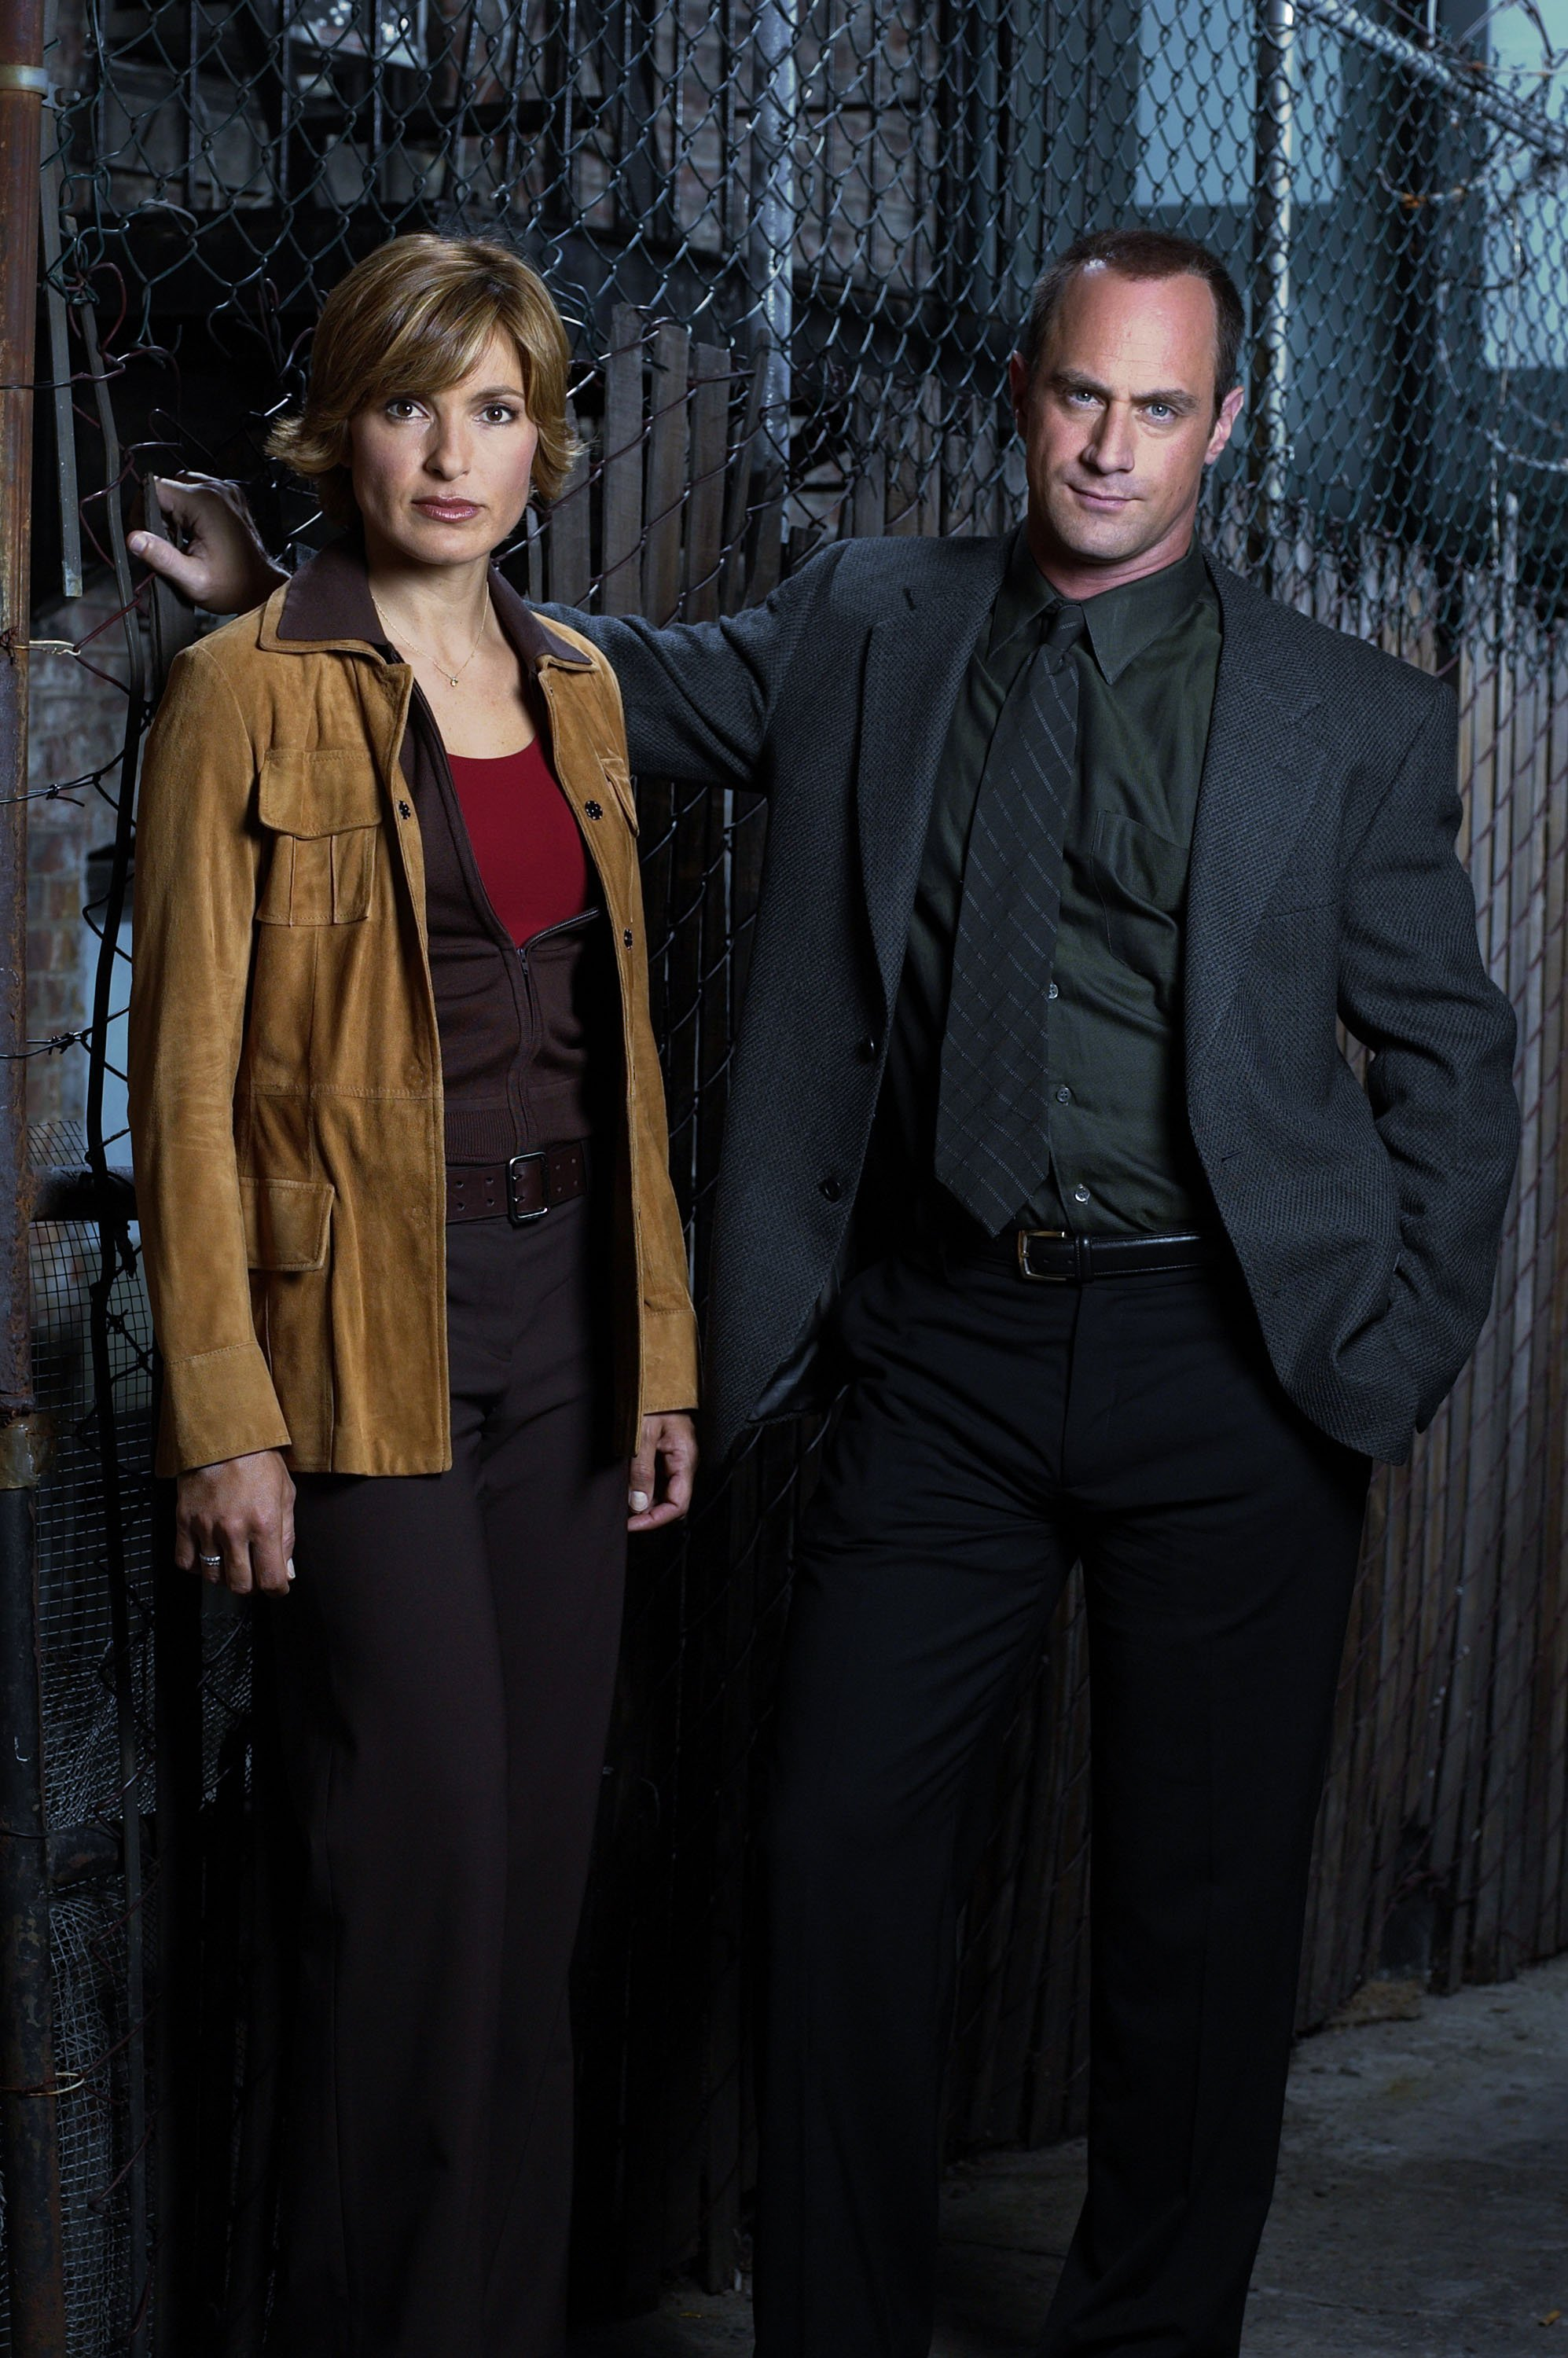 """Christopher Meloni and Mariska Hargitay as their characters in """"Law & Order"""" season 5.   Photo: Getty Images"""